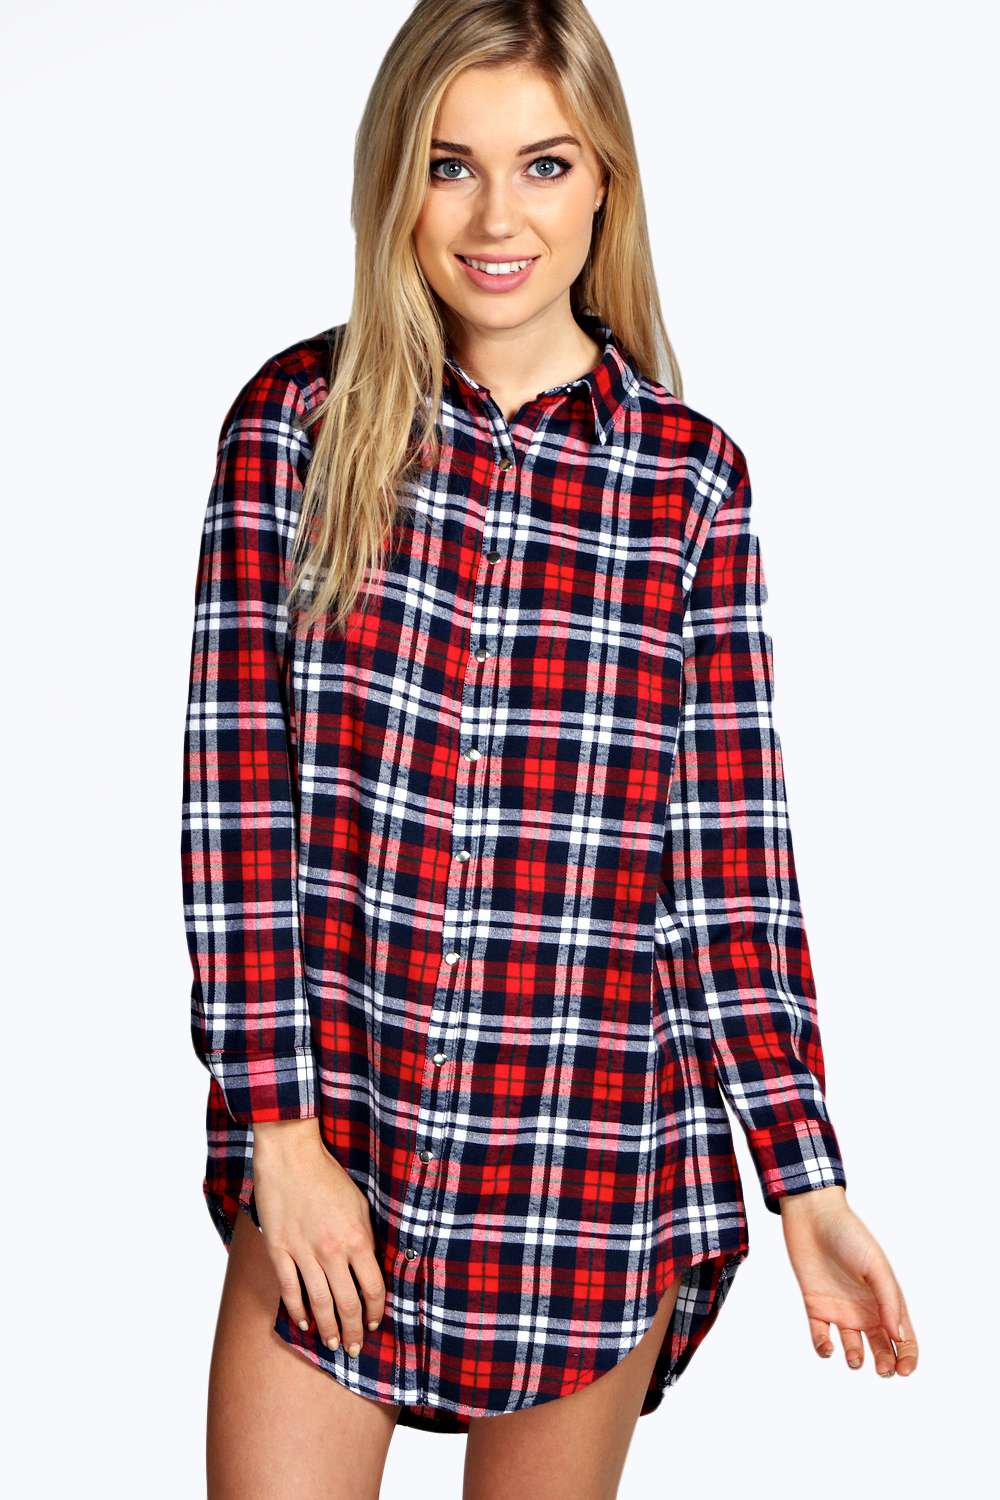 Oversized (One Size) Plaid Flannel Long Sleeve Shirt features Two Front Chest Pockets, Collar, Button Up Closure, and tab on sleeves. Wear open, buttoned up, and with rolled up sleeves option. Boyfriend style plaid blouse available in various color and print combinations/5(17).